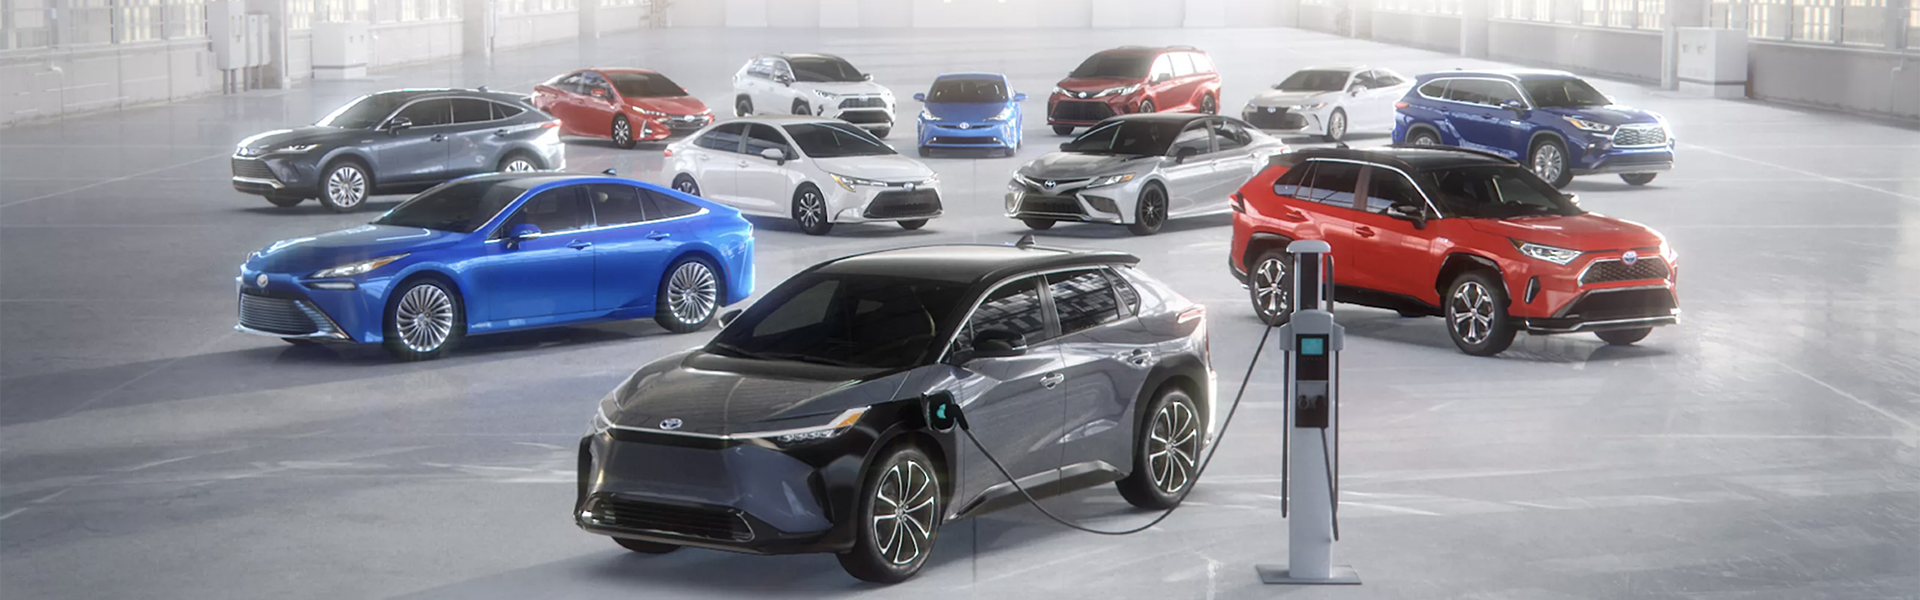 Learn more about all the latest Toyota Hybrid, Plug-In Hybrid, and Fuel Cell Electric models.